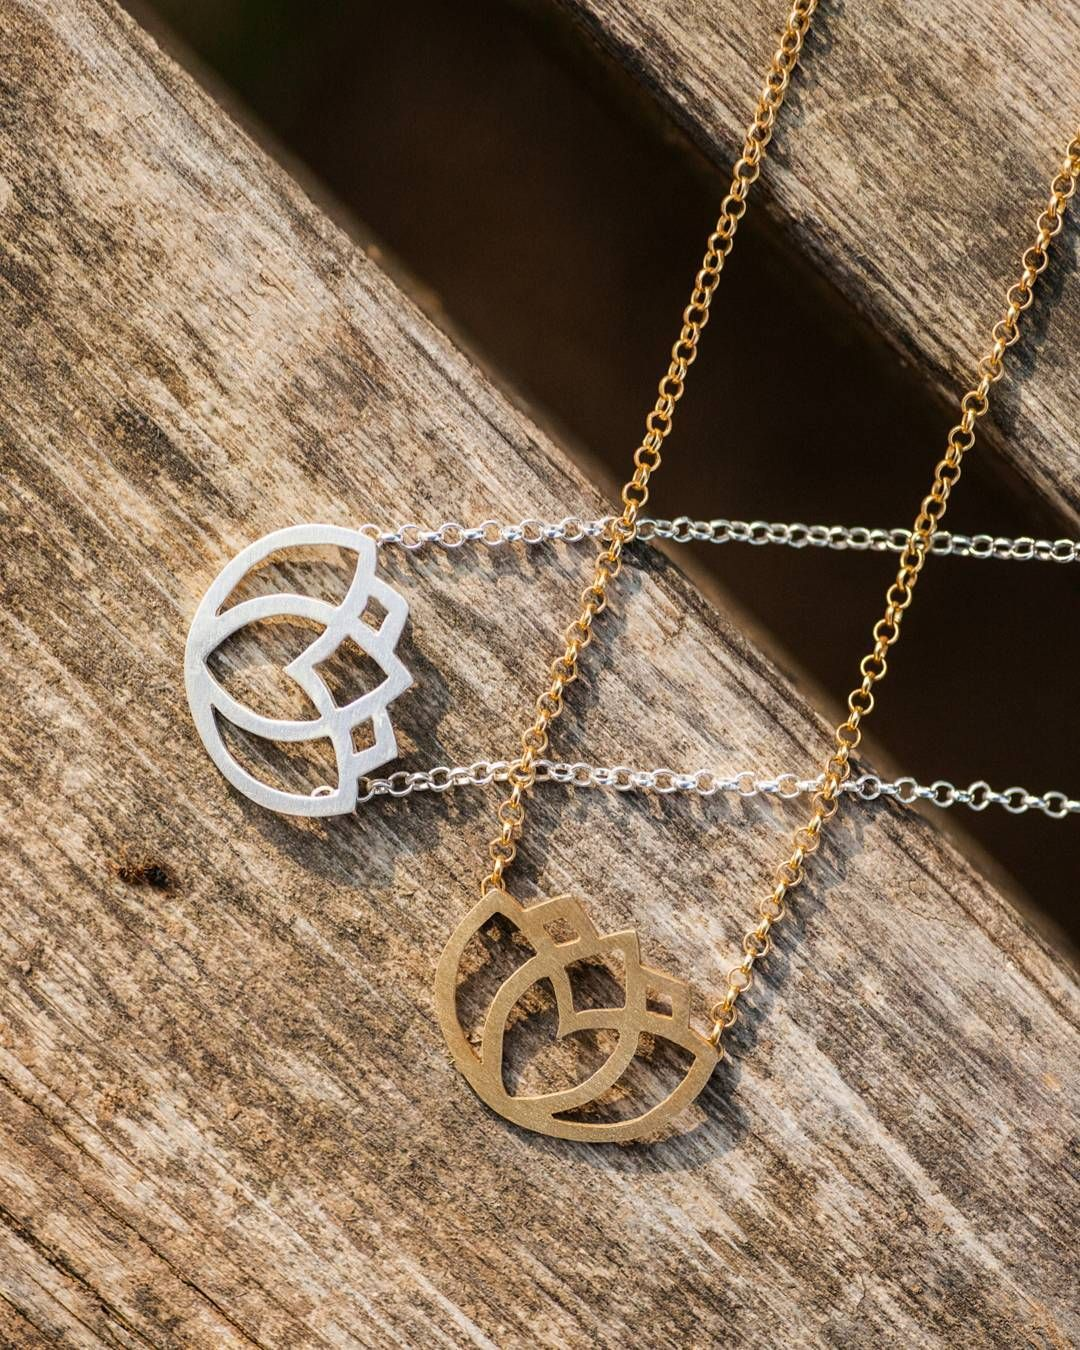 Gold Or Silver Lotus Flower Necklace Make Your Choice Lotus